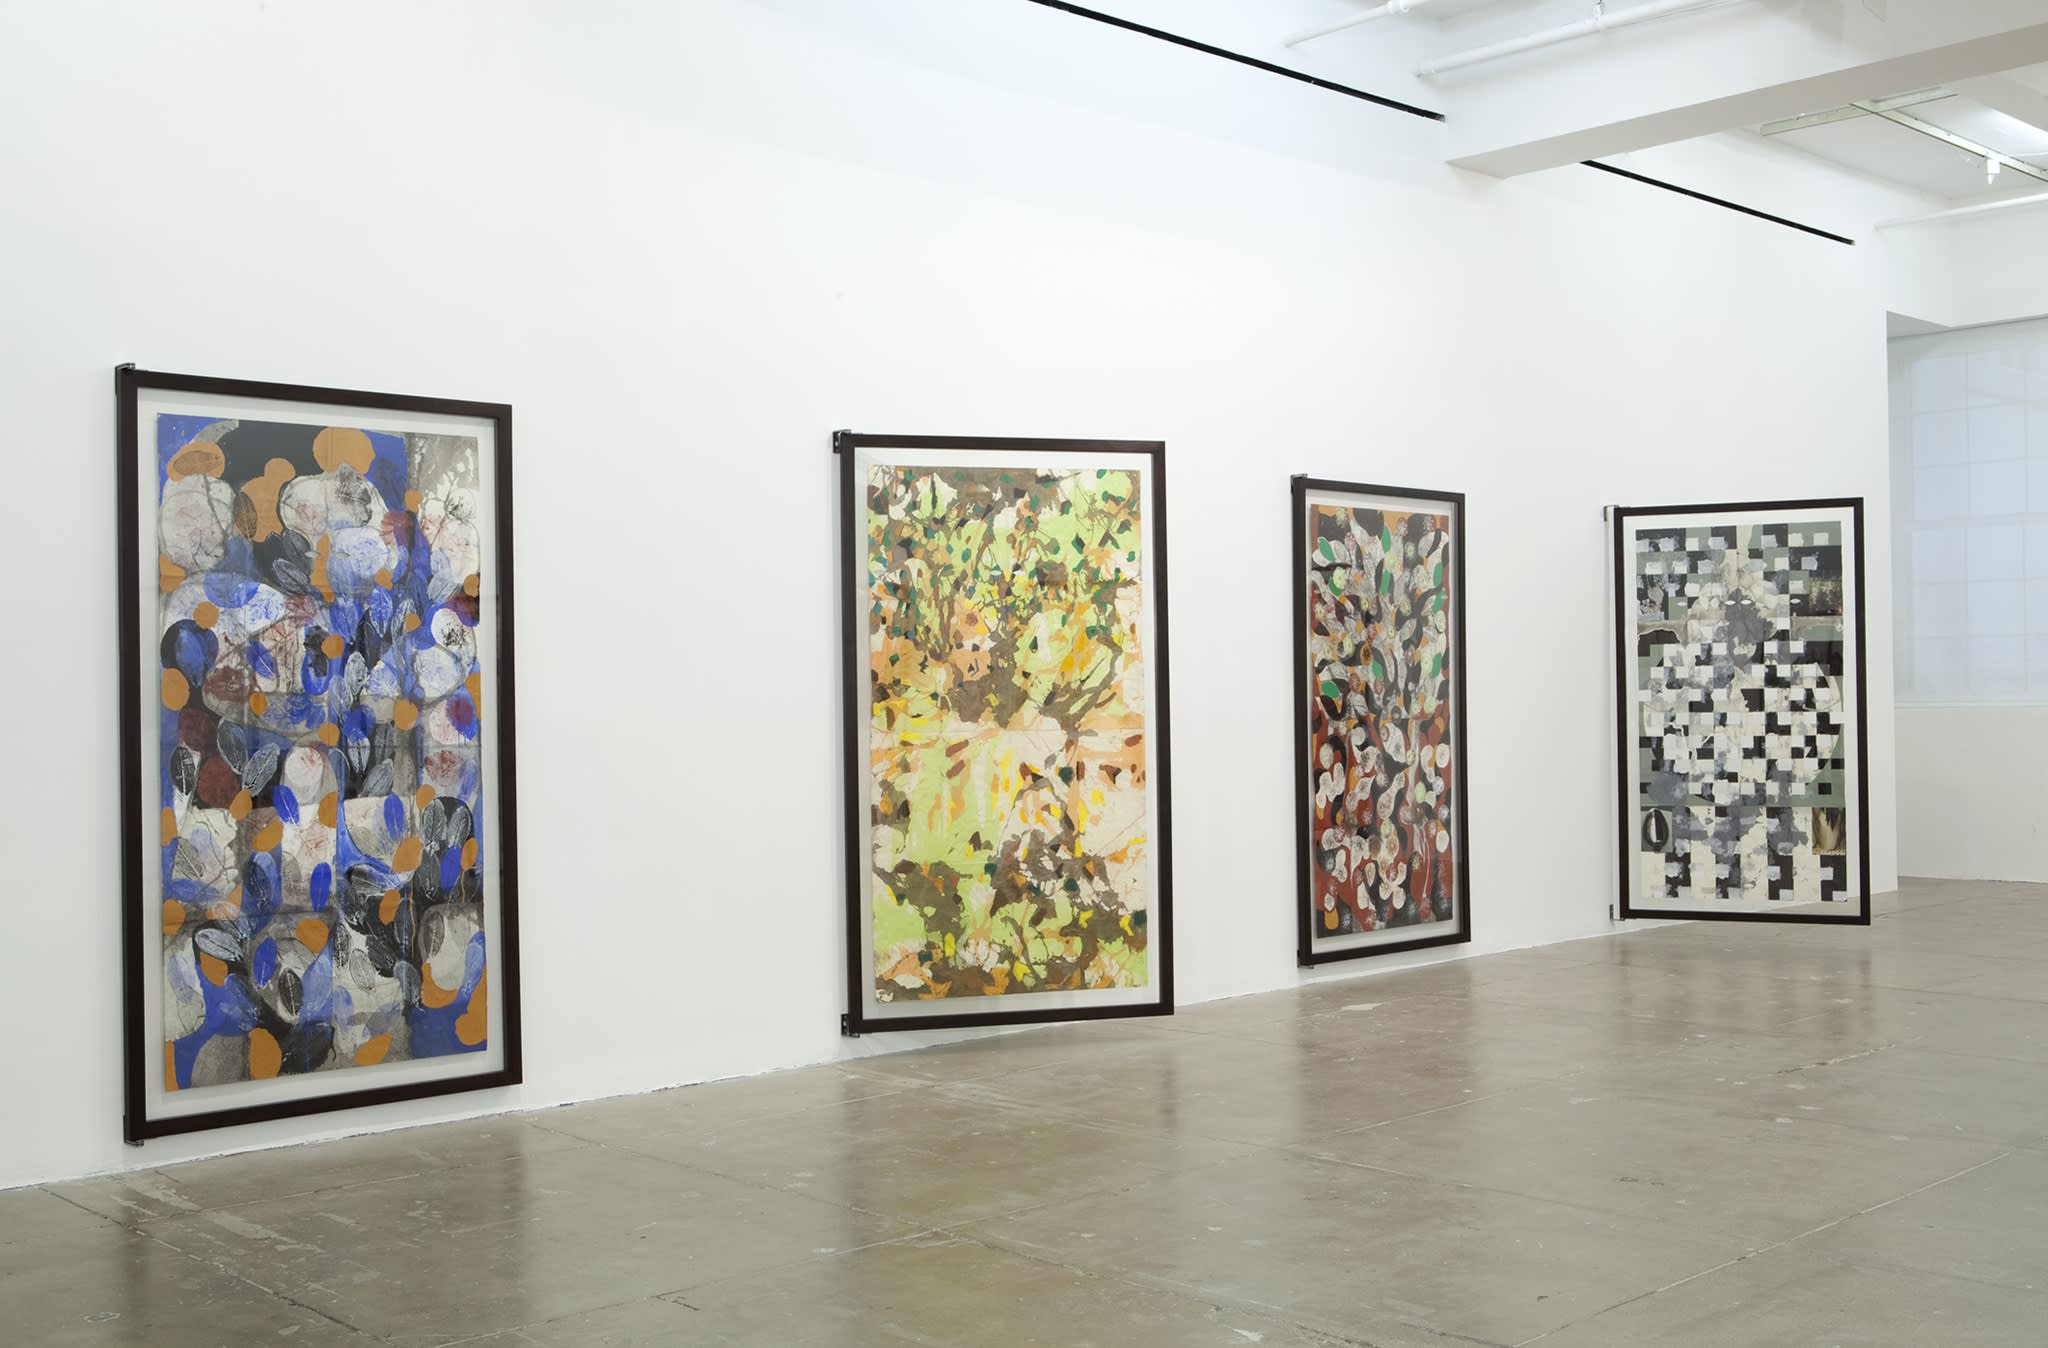 Four large paintings of abstract shapes and various colors are displayed on hinges to view the front and back.